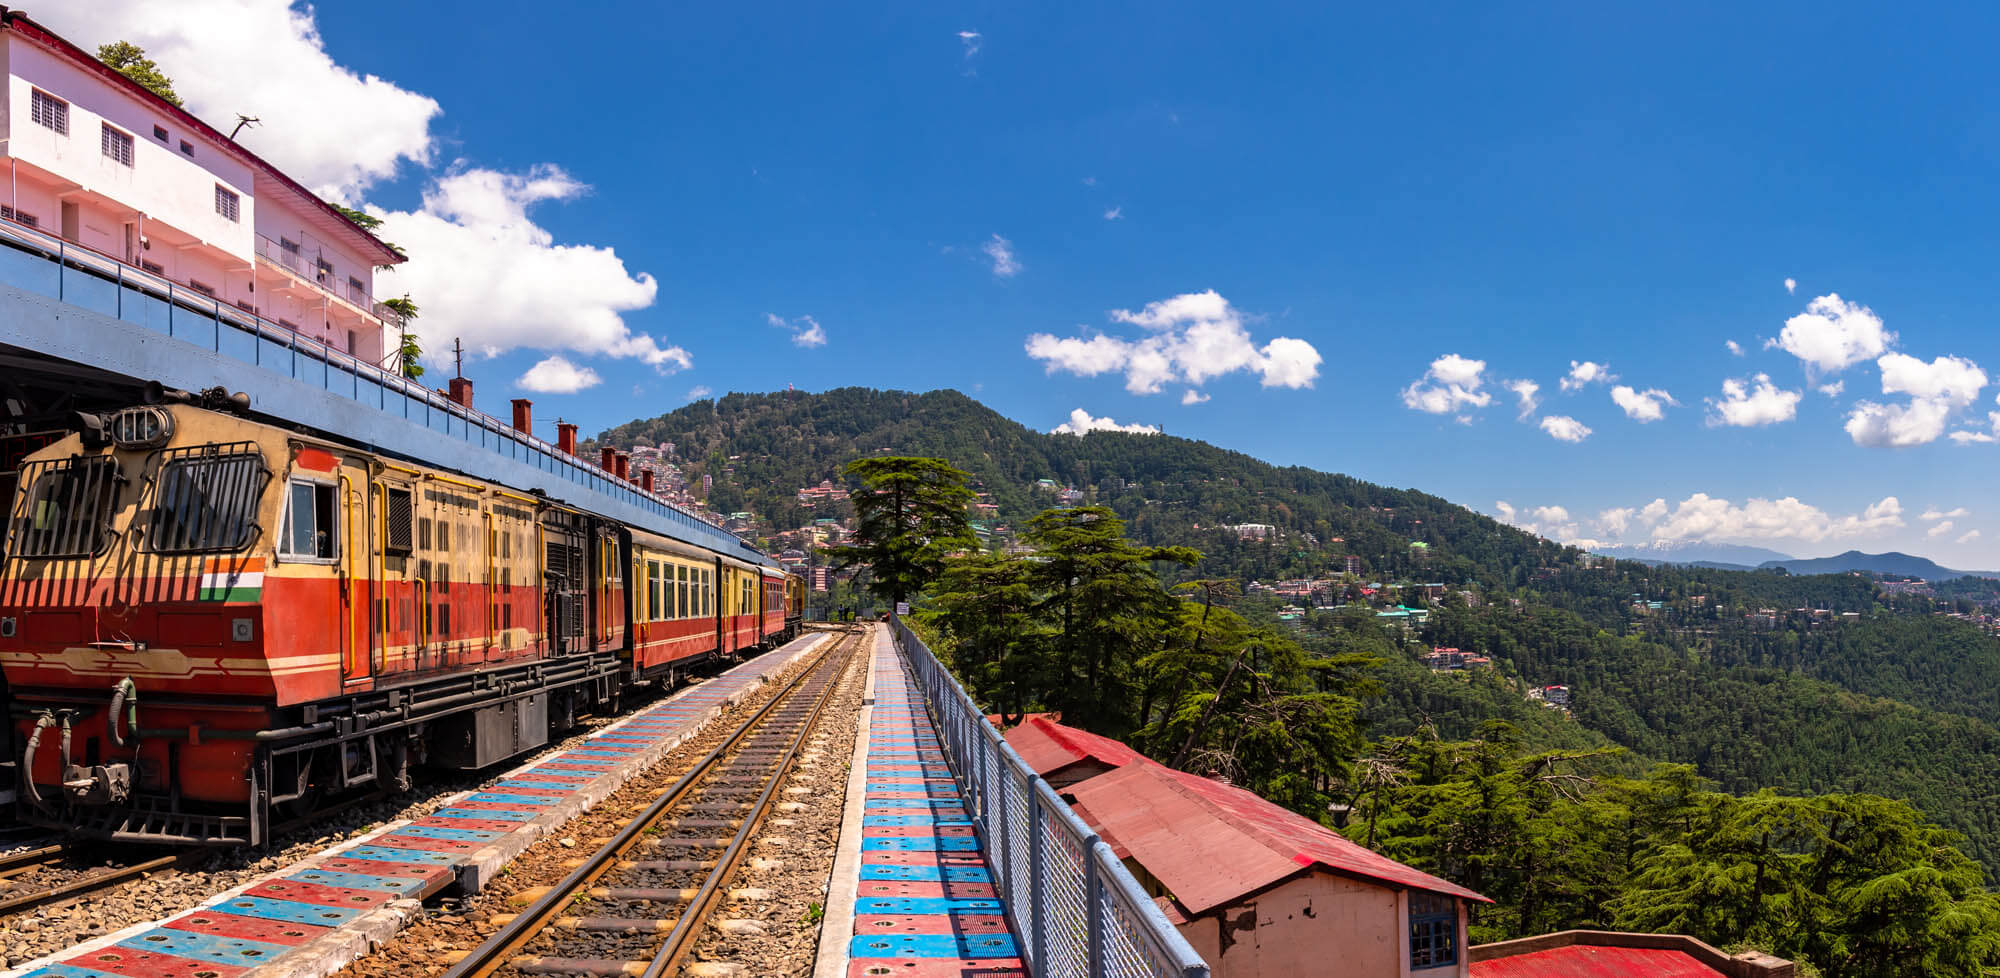 The colourful toy train in Shimla.